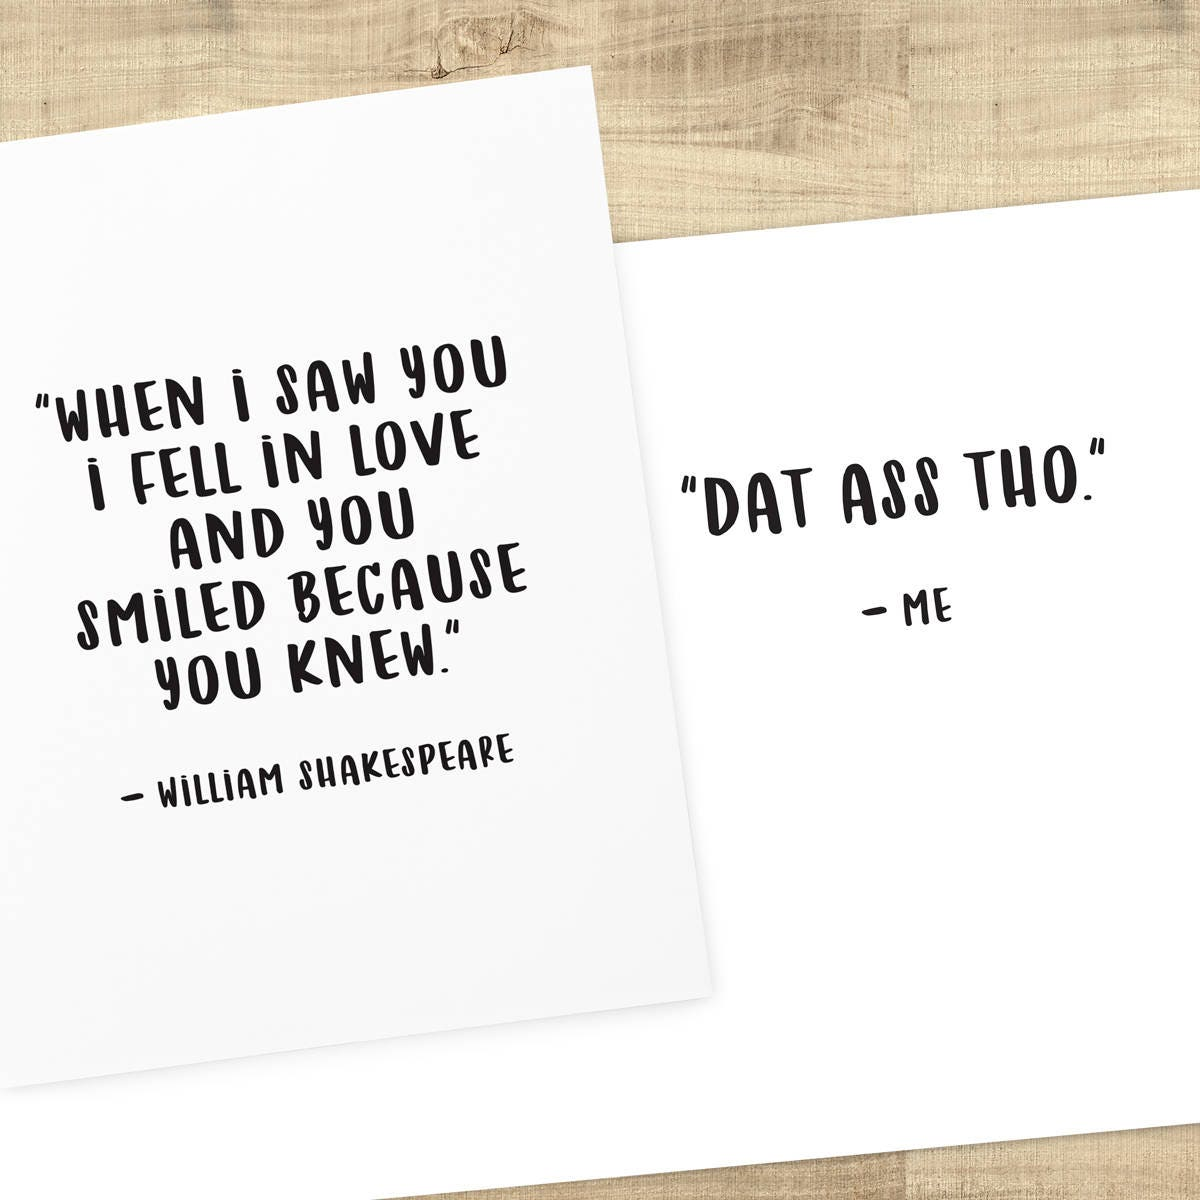 Funny Love Card William Shakespeare Smile Quote Inside Dat A S Tho